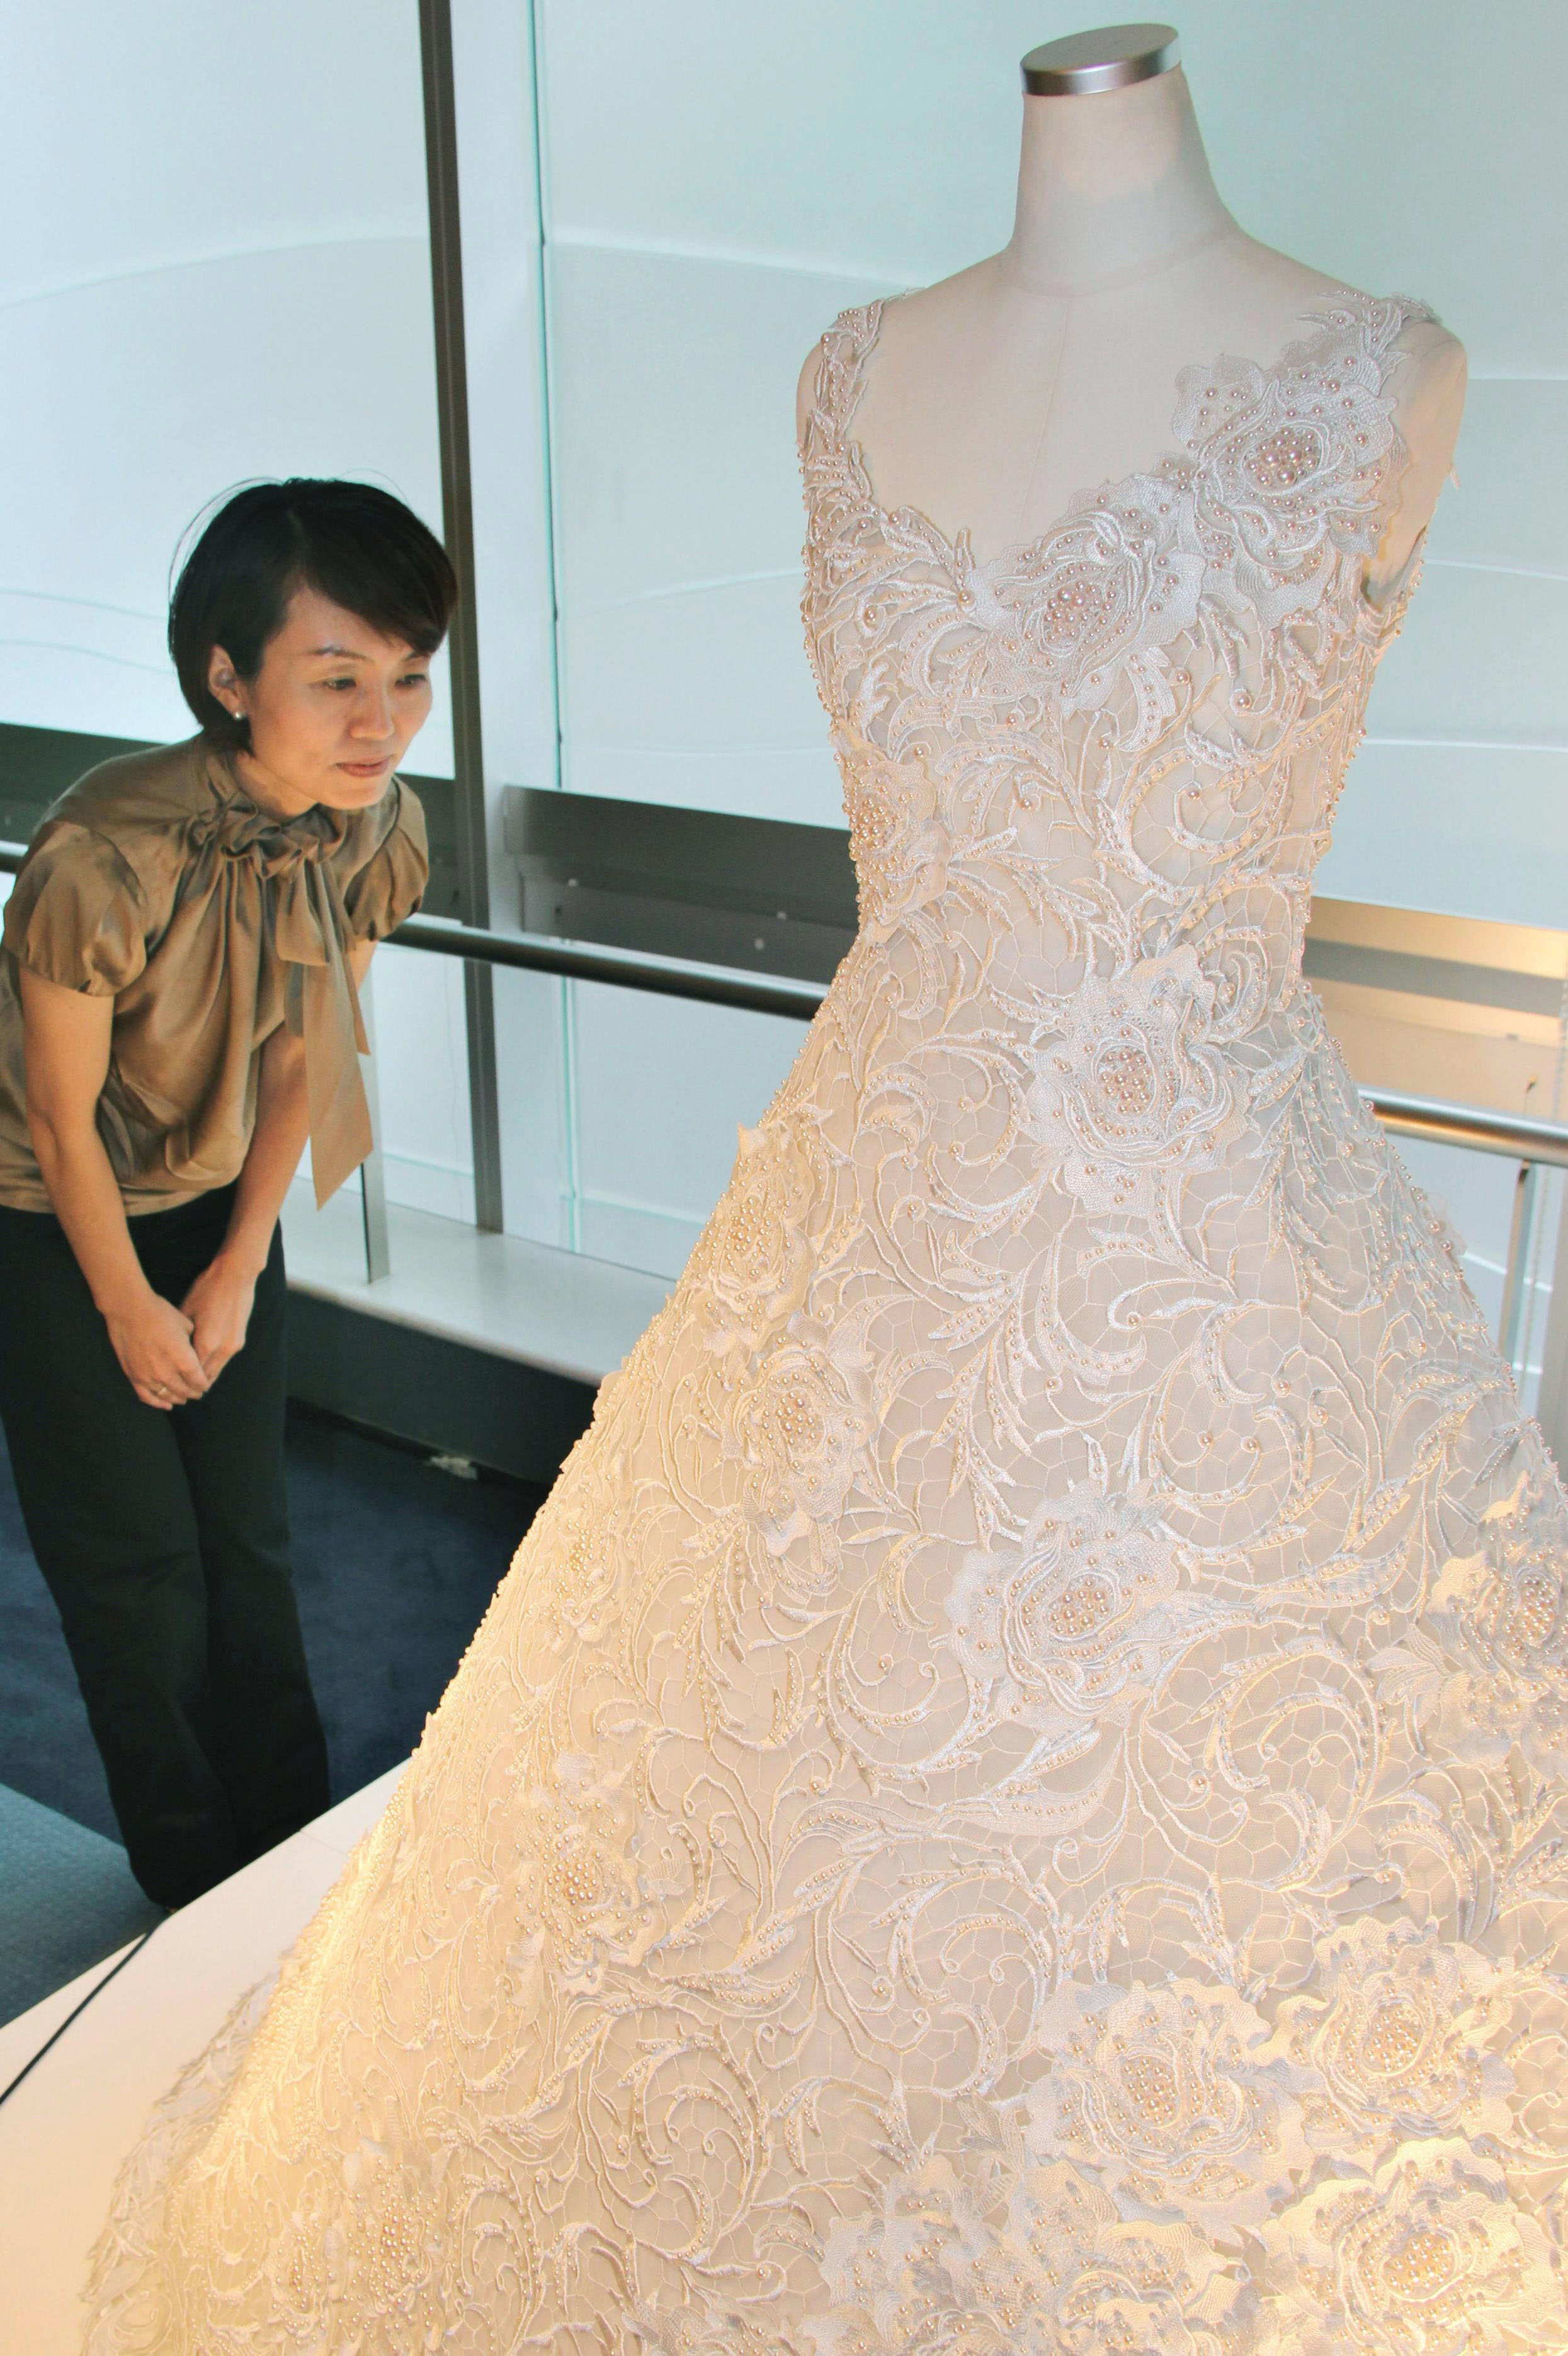 Pearl-inlaid wedding dress showcased